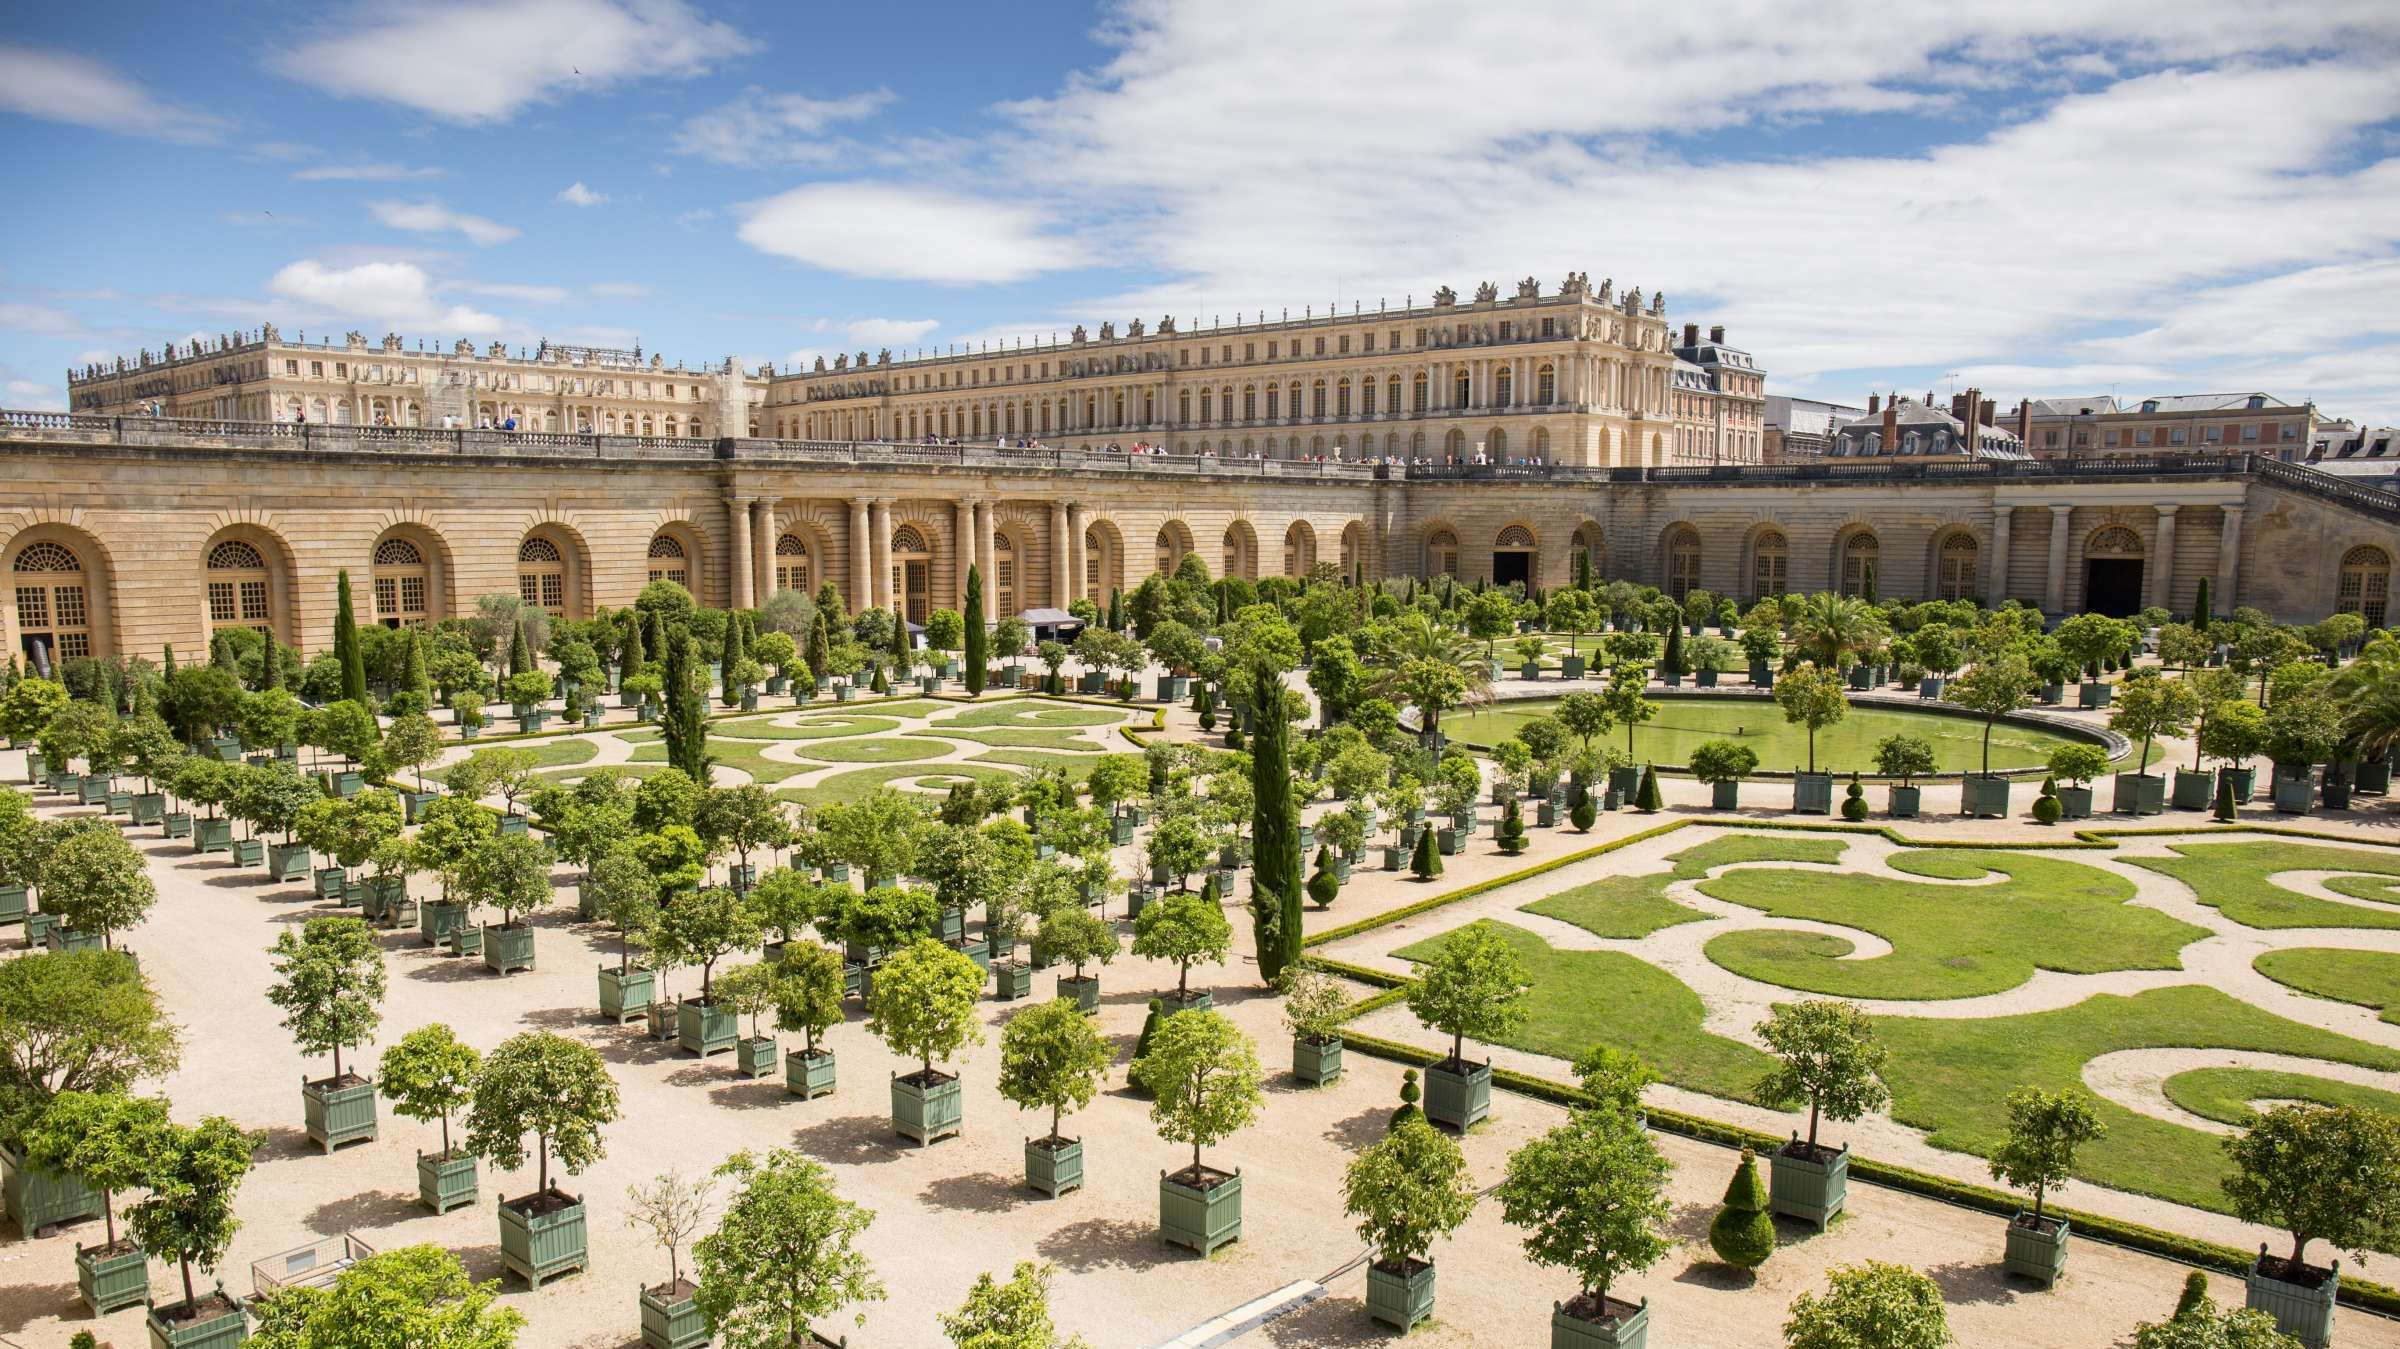 10 Luxurious Palaces You Can Stay In